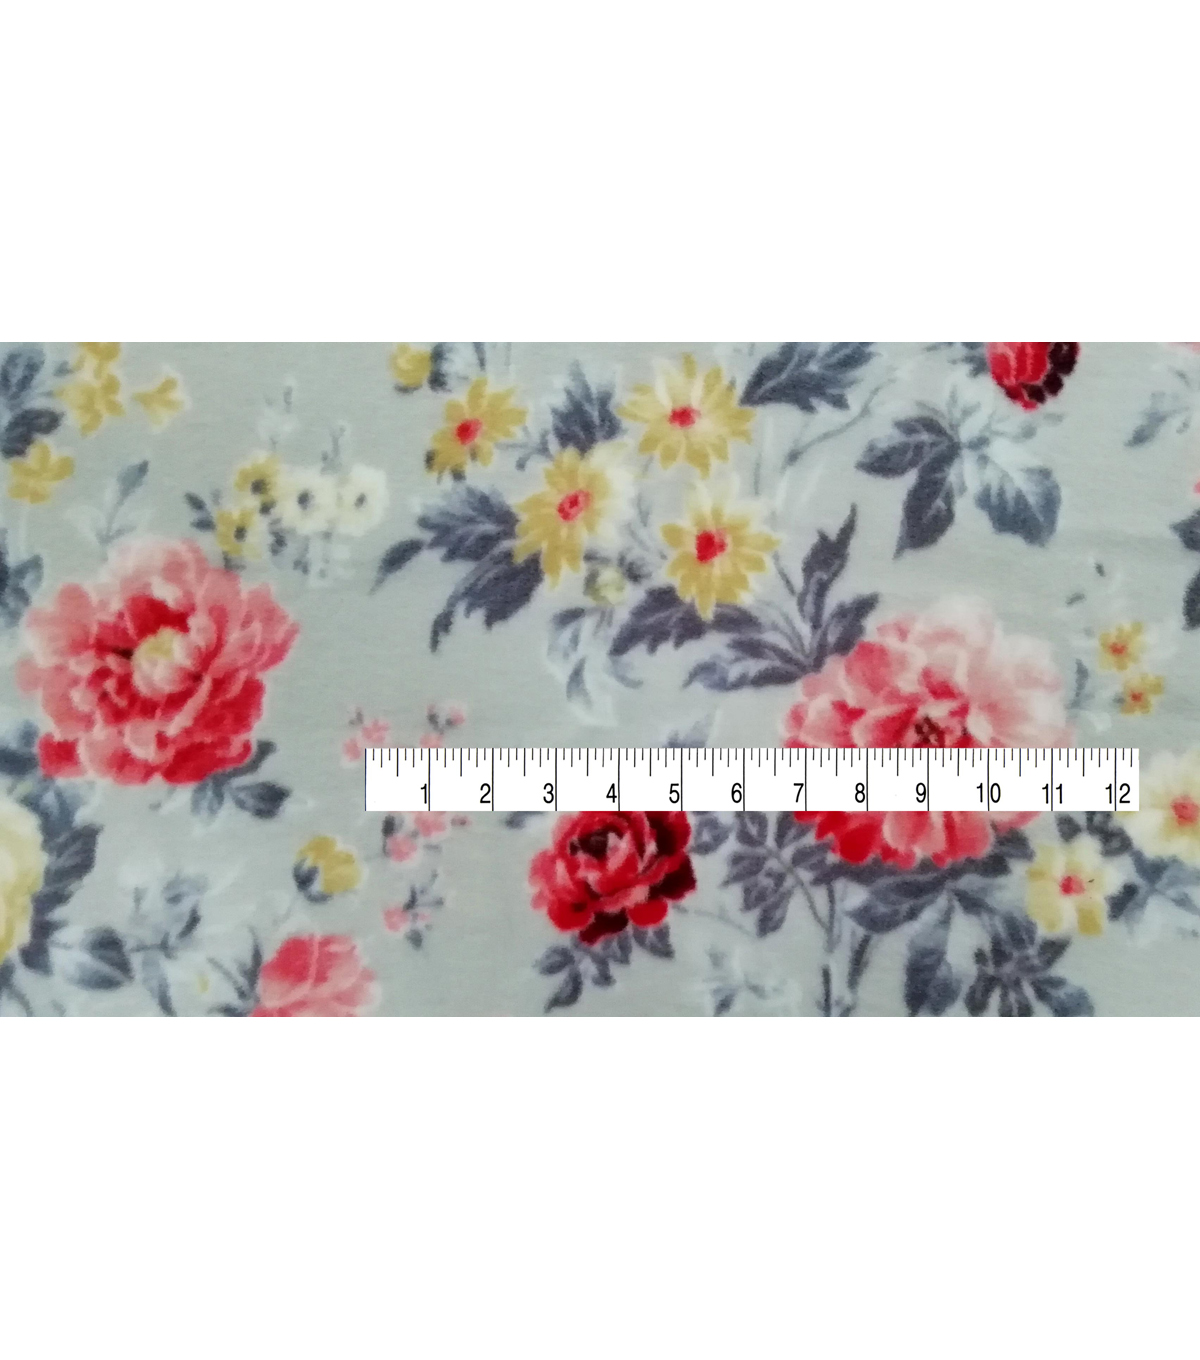 Super Fleece Fabric -Pretty Floral on Gray